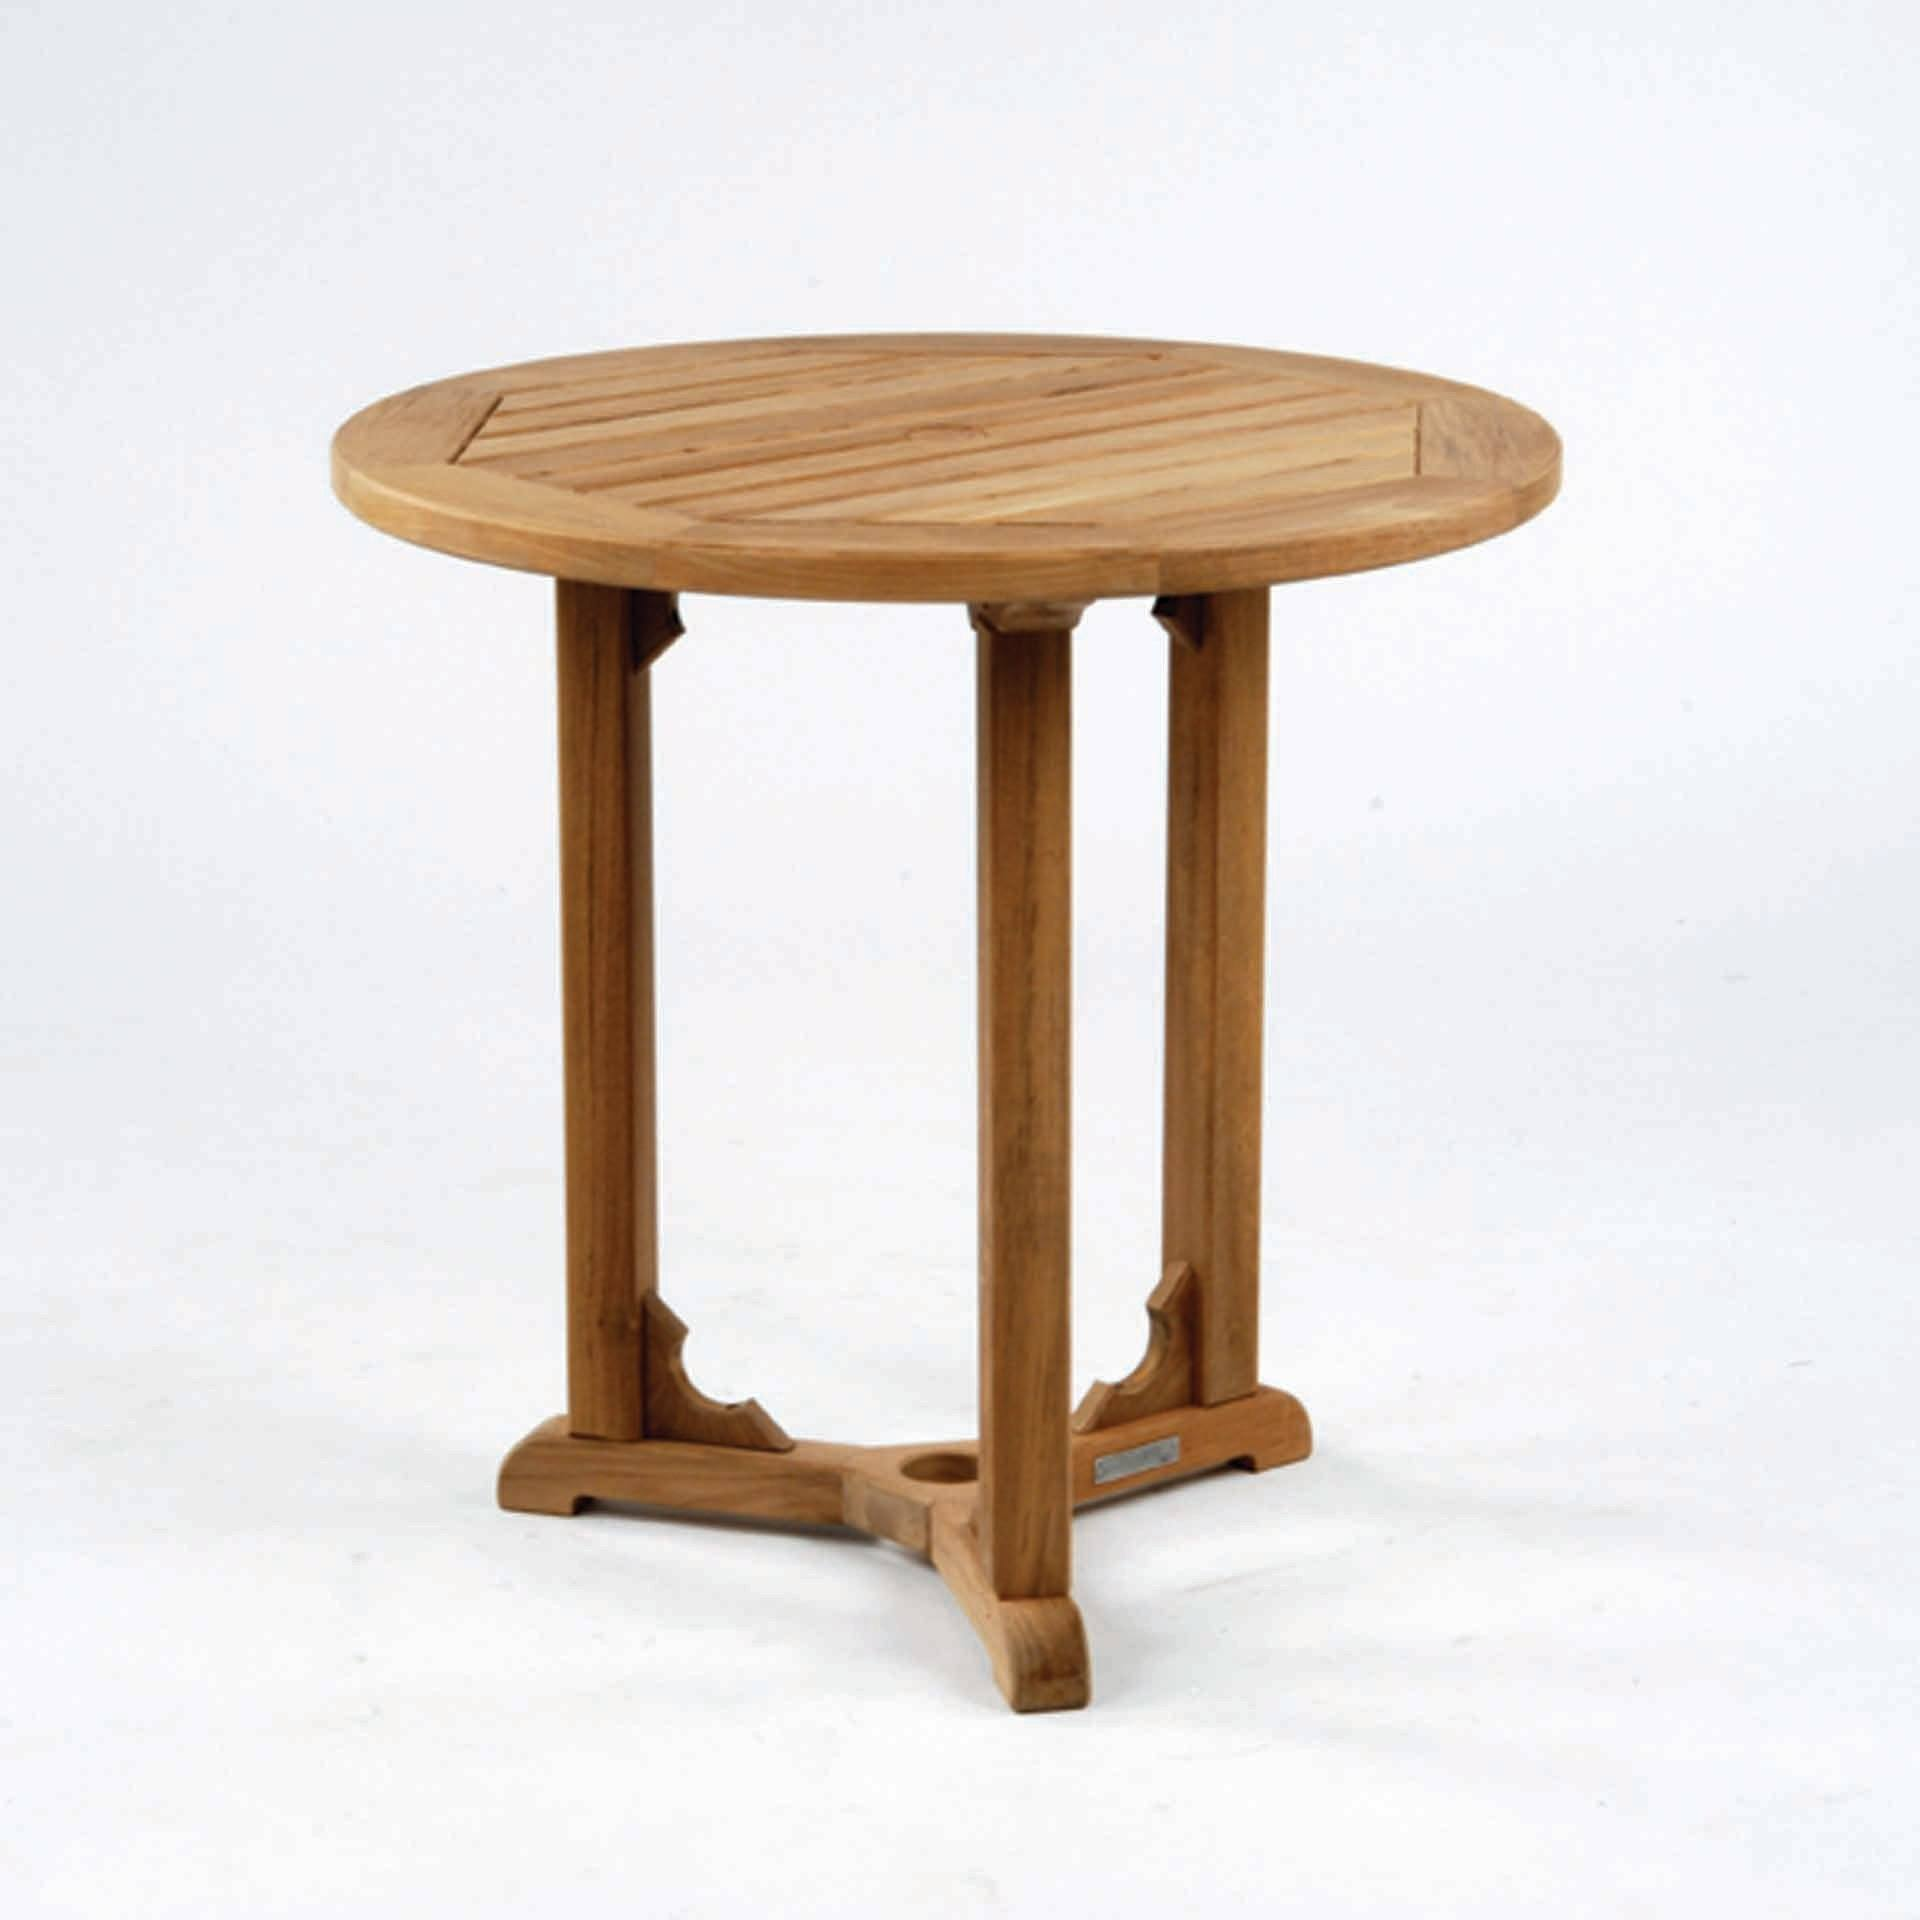 Kingsley Bate Essex 30 Round Dining Table Leisure Living